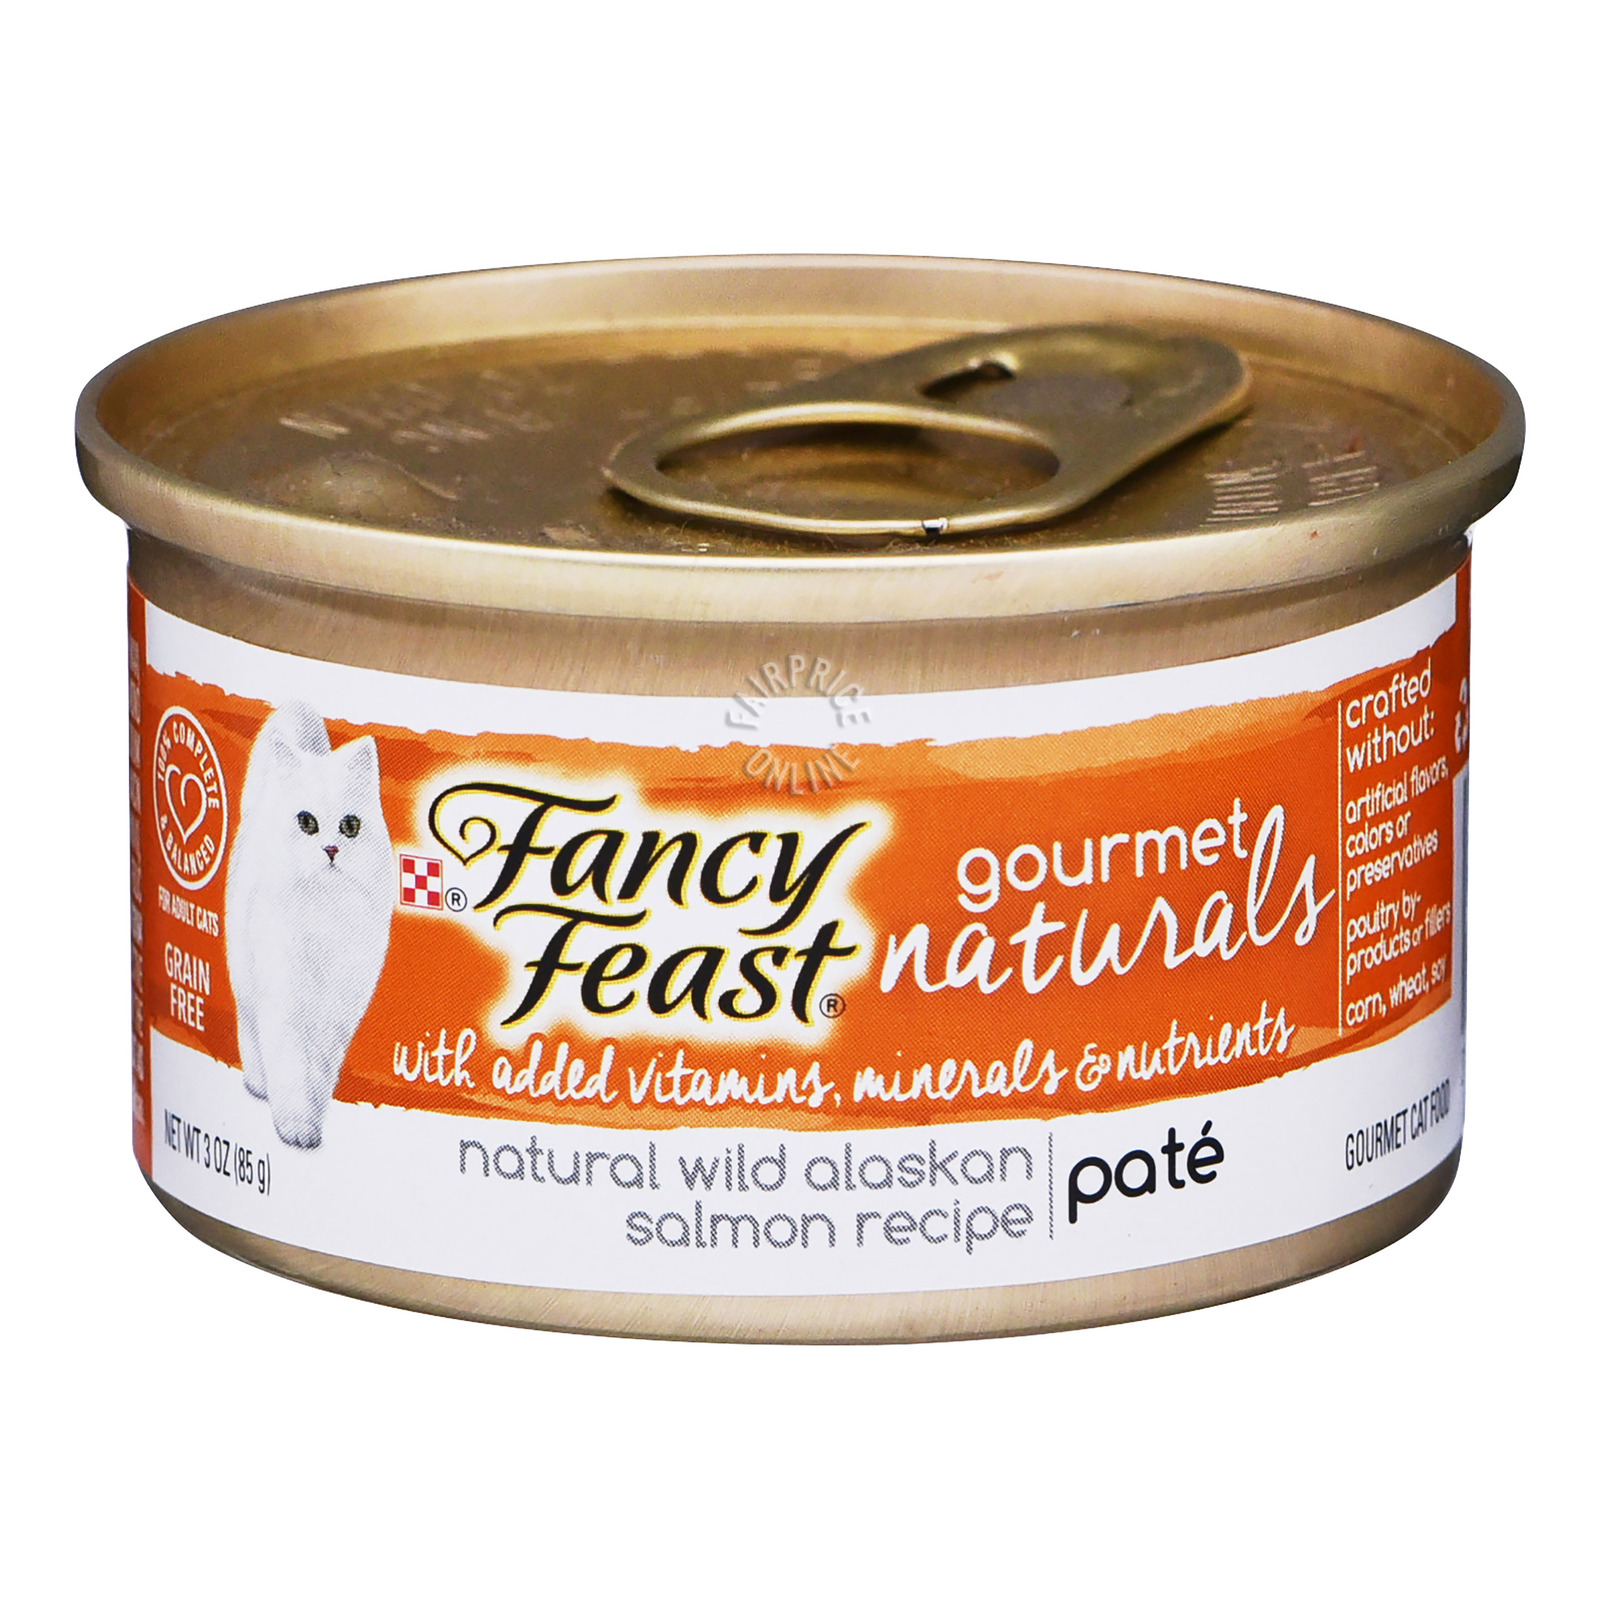 Fancy Feast Gourmet Naturals Cat Food - Wild Alaskan Salmon